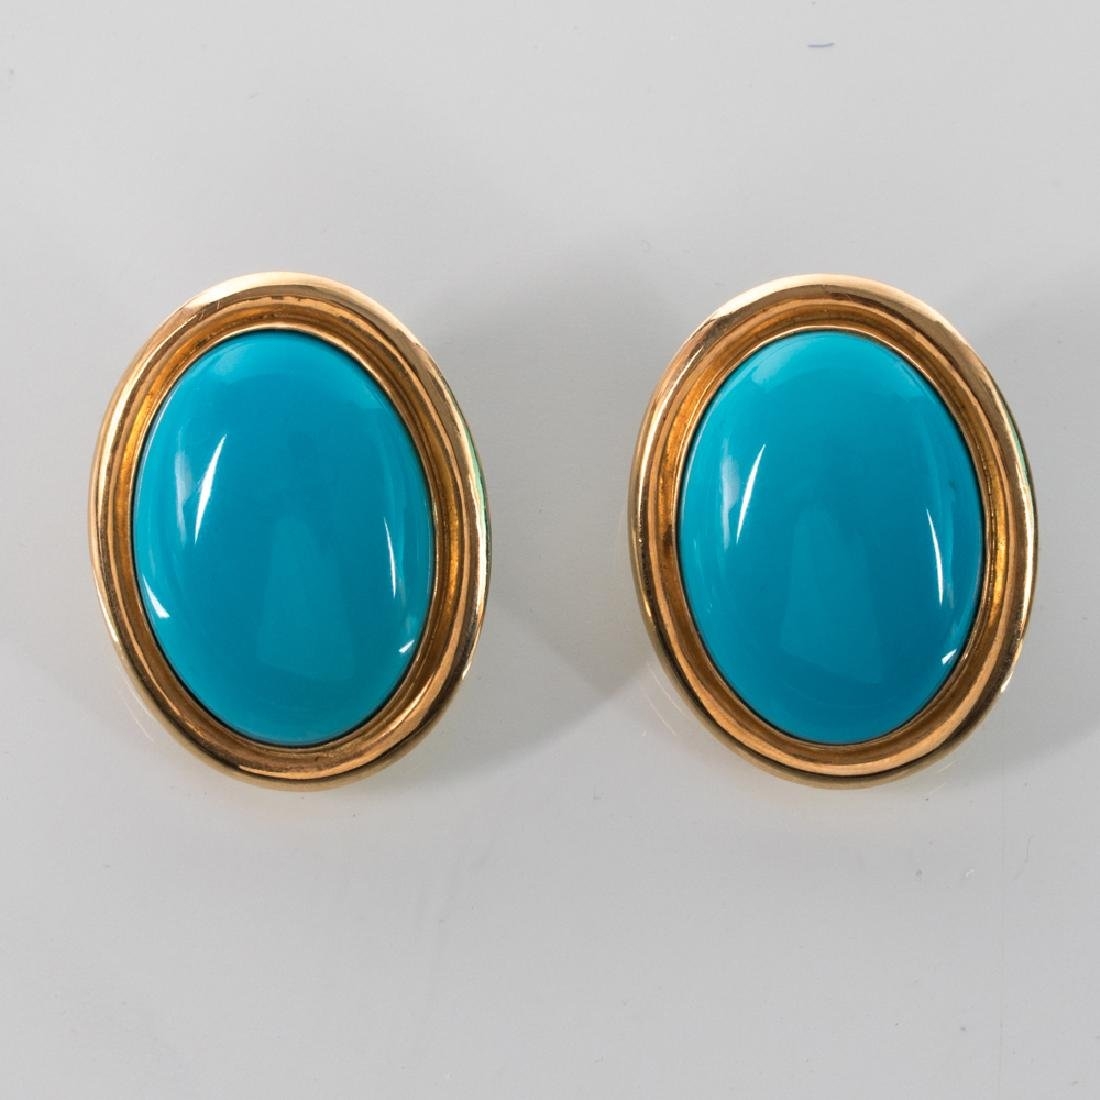 A Pair of 14kt. Yellow Gold and Turquoise Colored Stone - 2